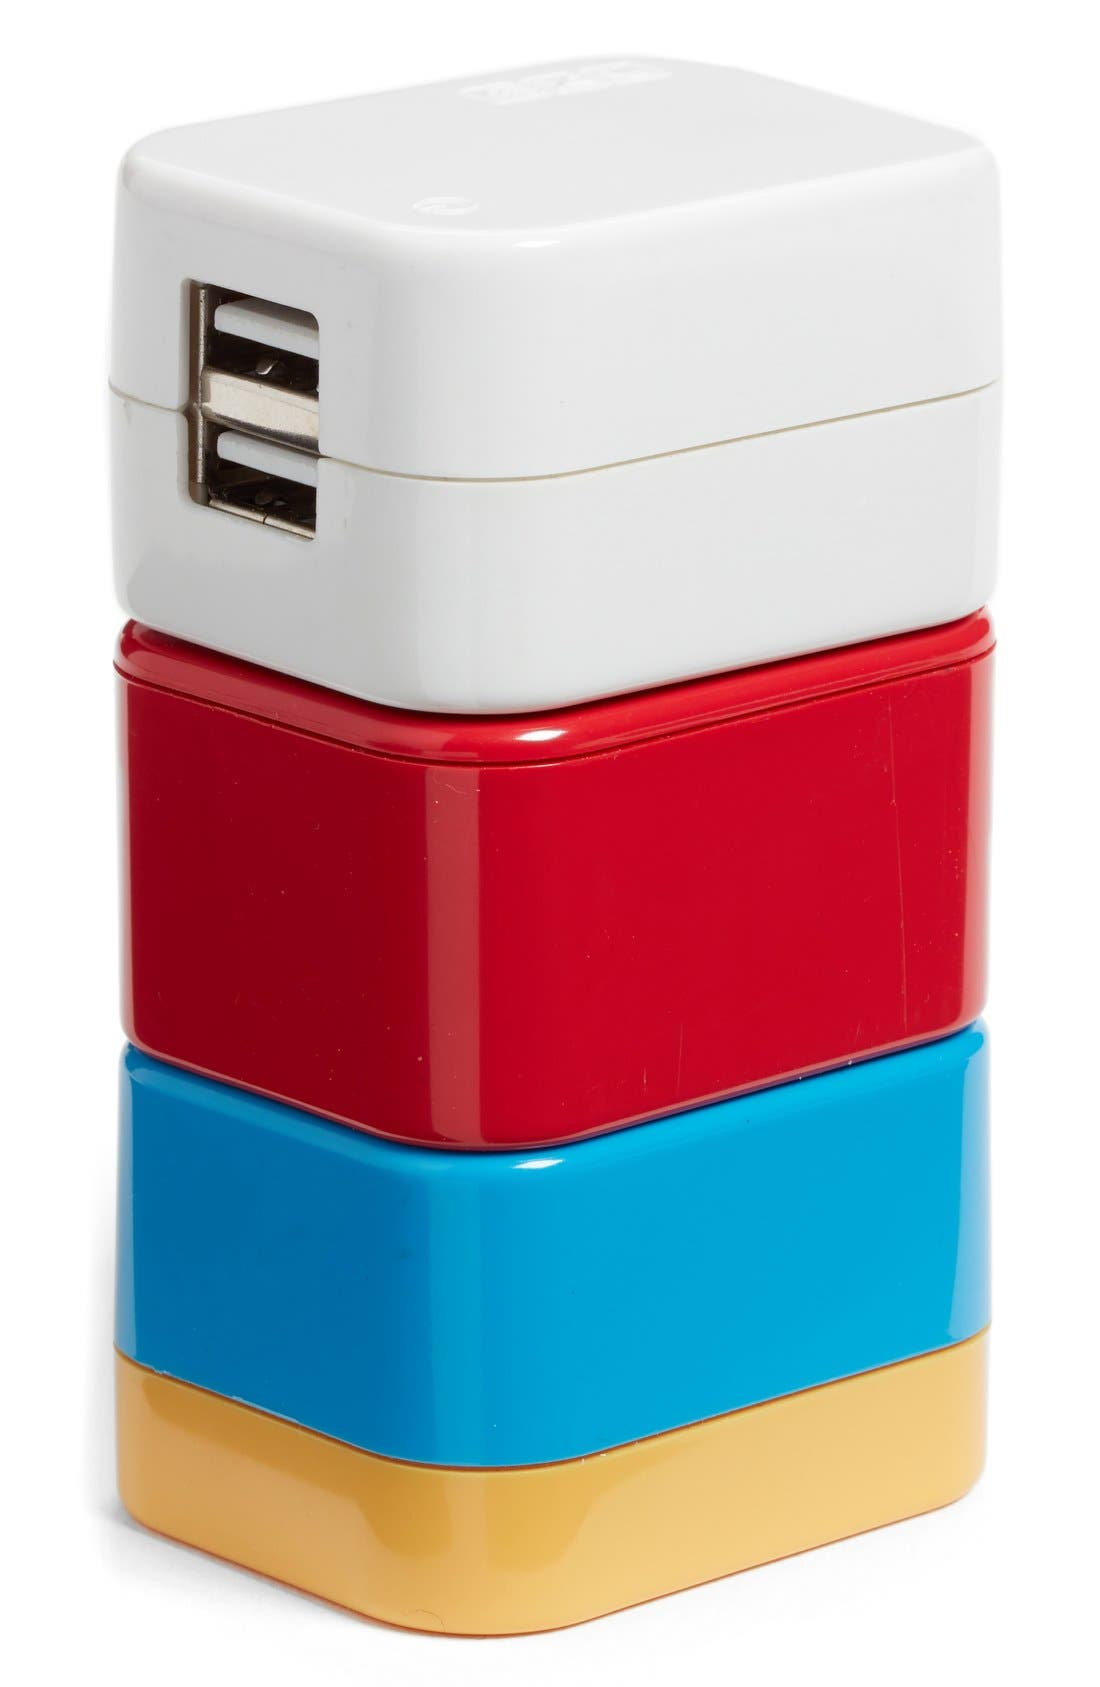 5-in-1 Universal Travel Adapter,                         Main,                         color, Multi